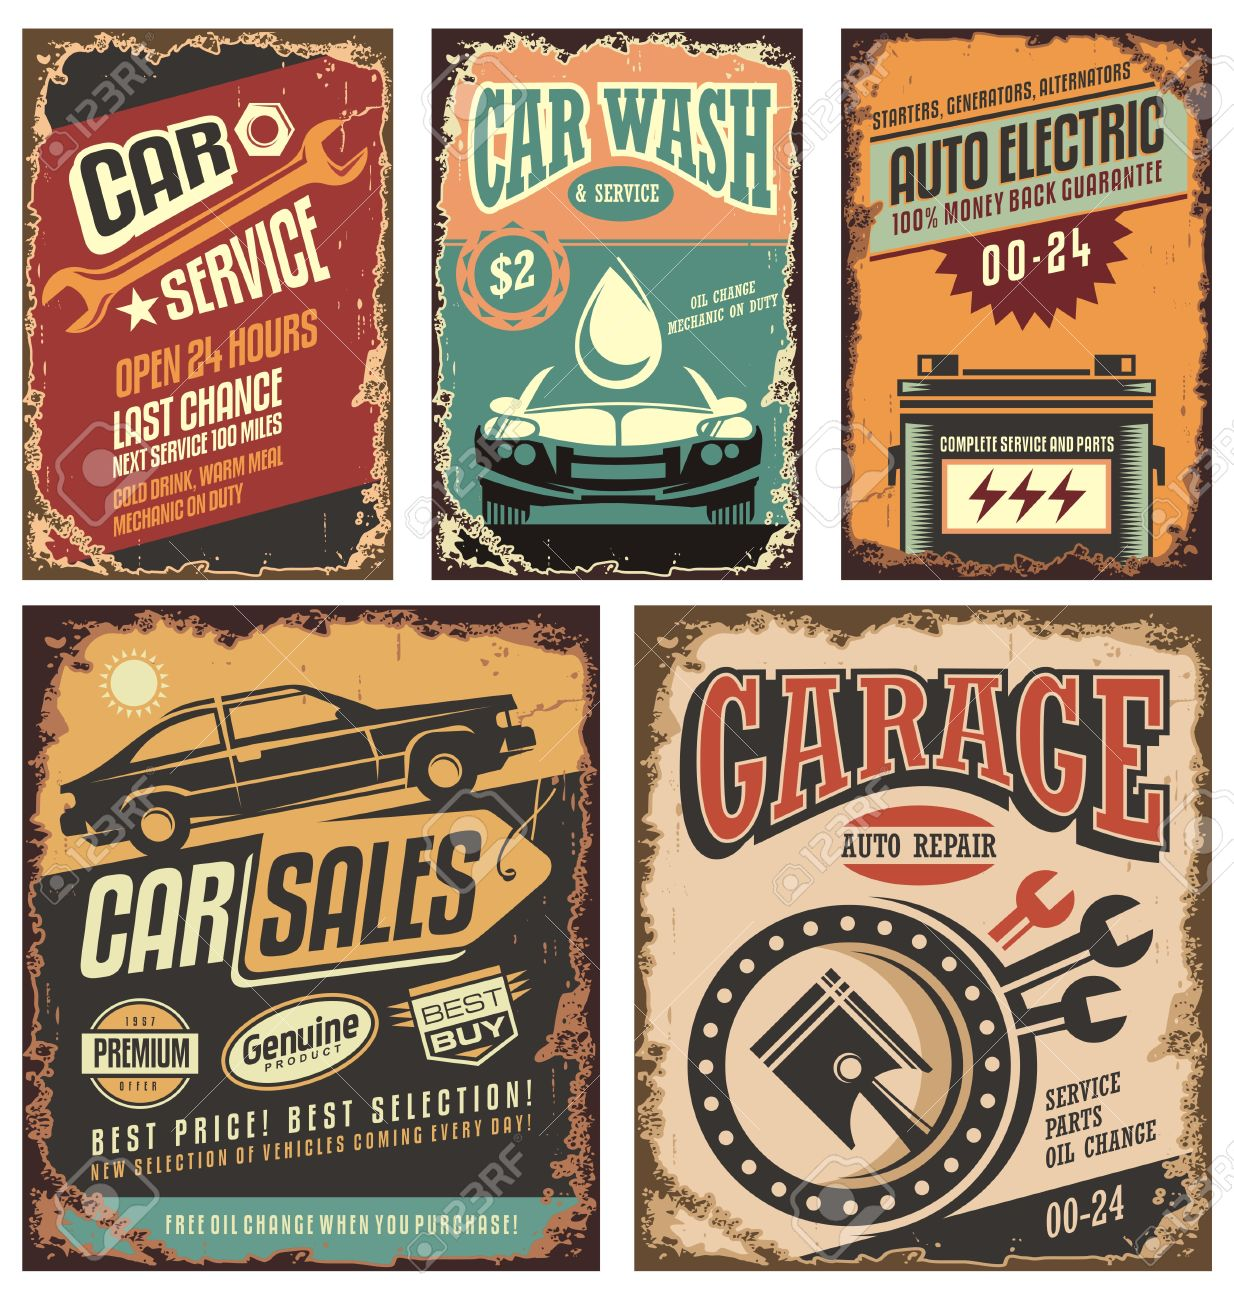 Vintage car service metal signs and posters - 50937594